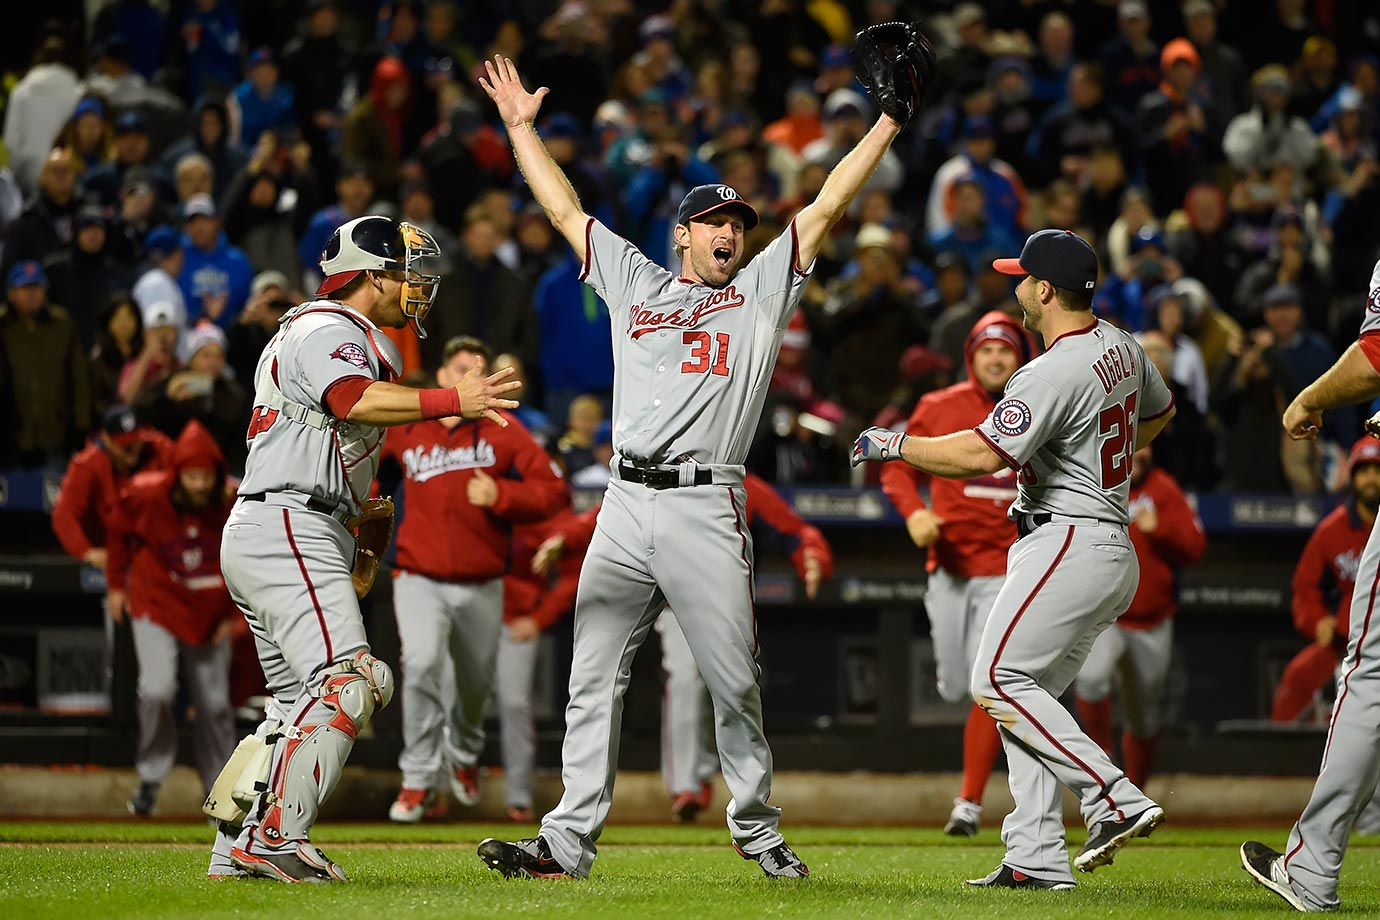 For just the sixth time in Major League history, Max Scherzer threw a second no-hitter in the same season, while also striking out 17 Mets. He joined Nolan Ryan and Roy Halladay as the only pitchers with two no-no's in the same season over the past 50 years.